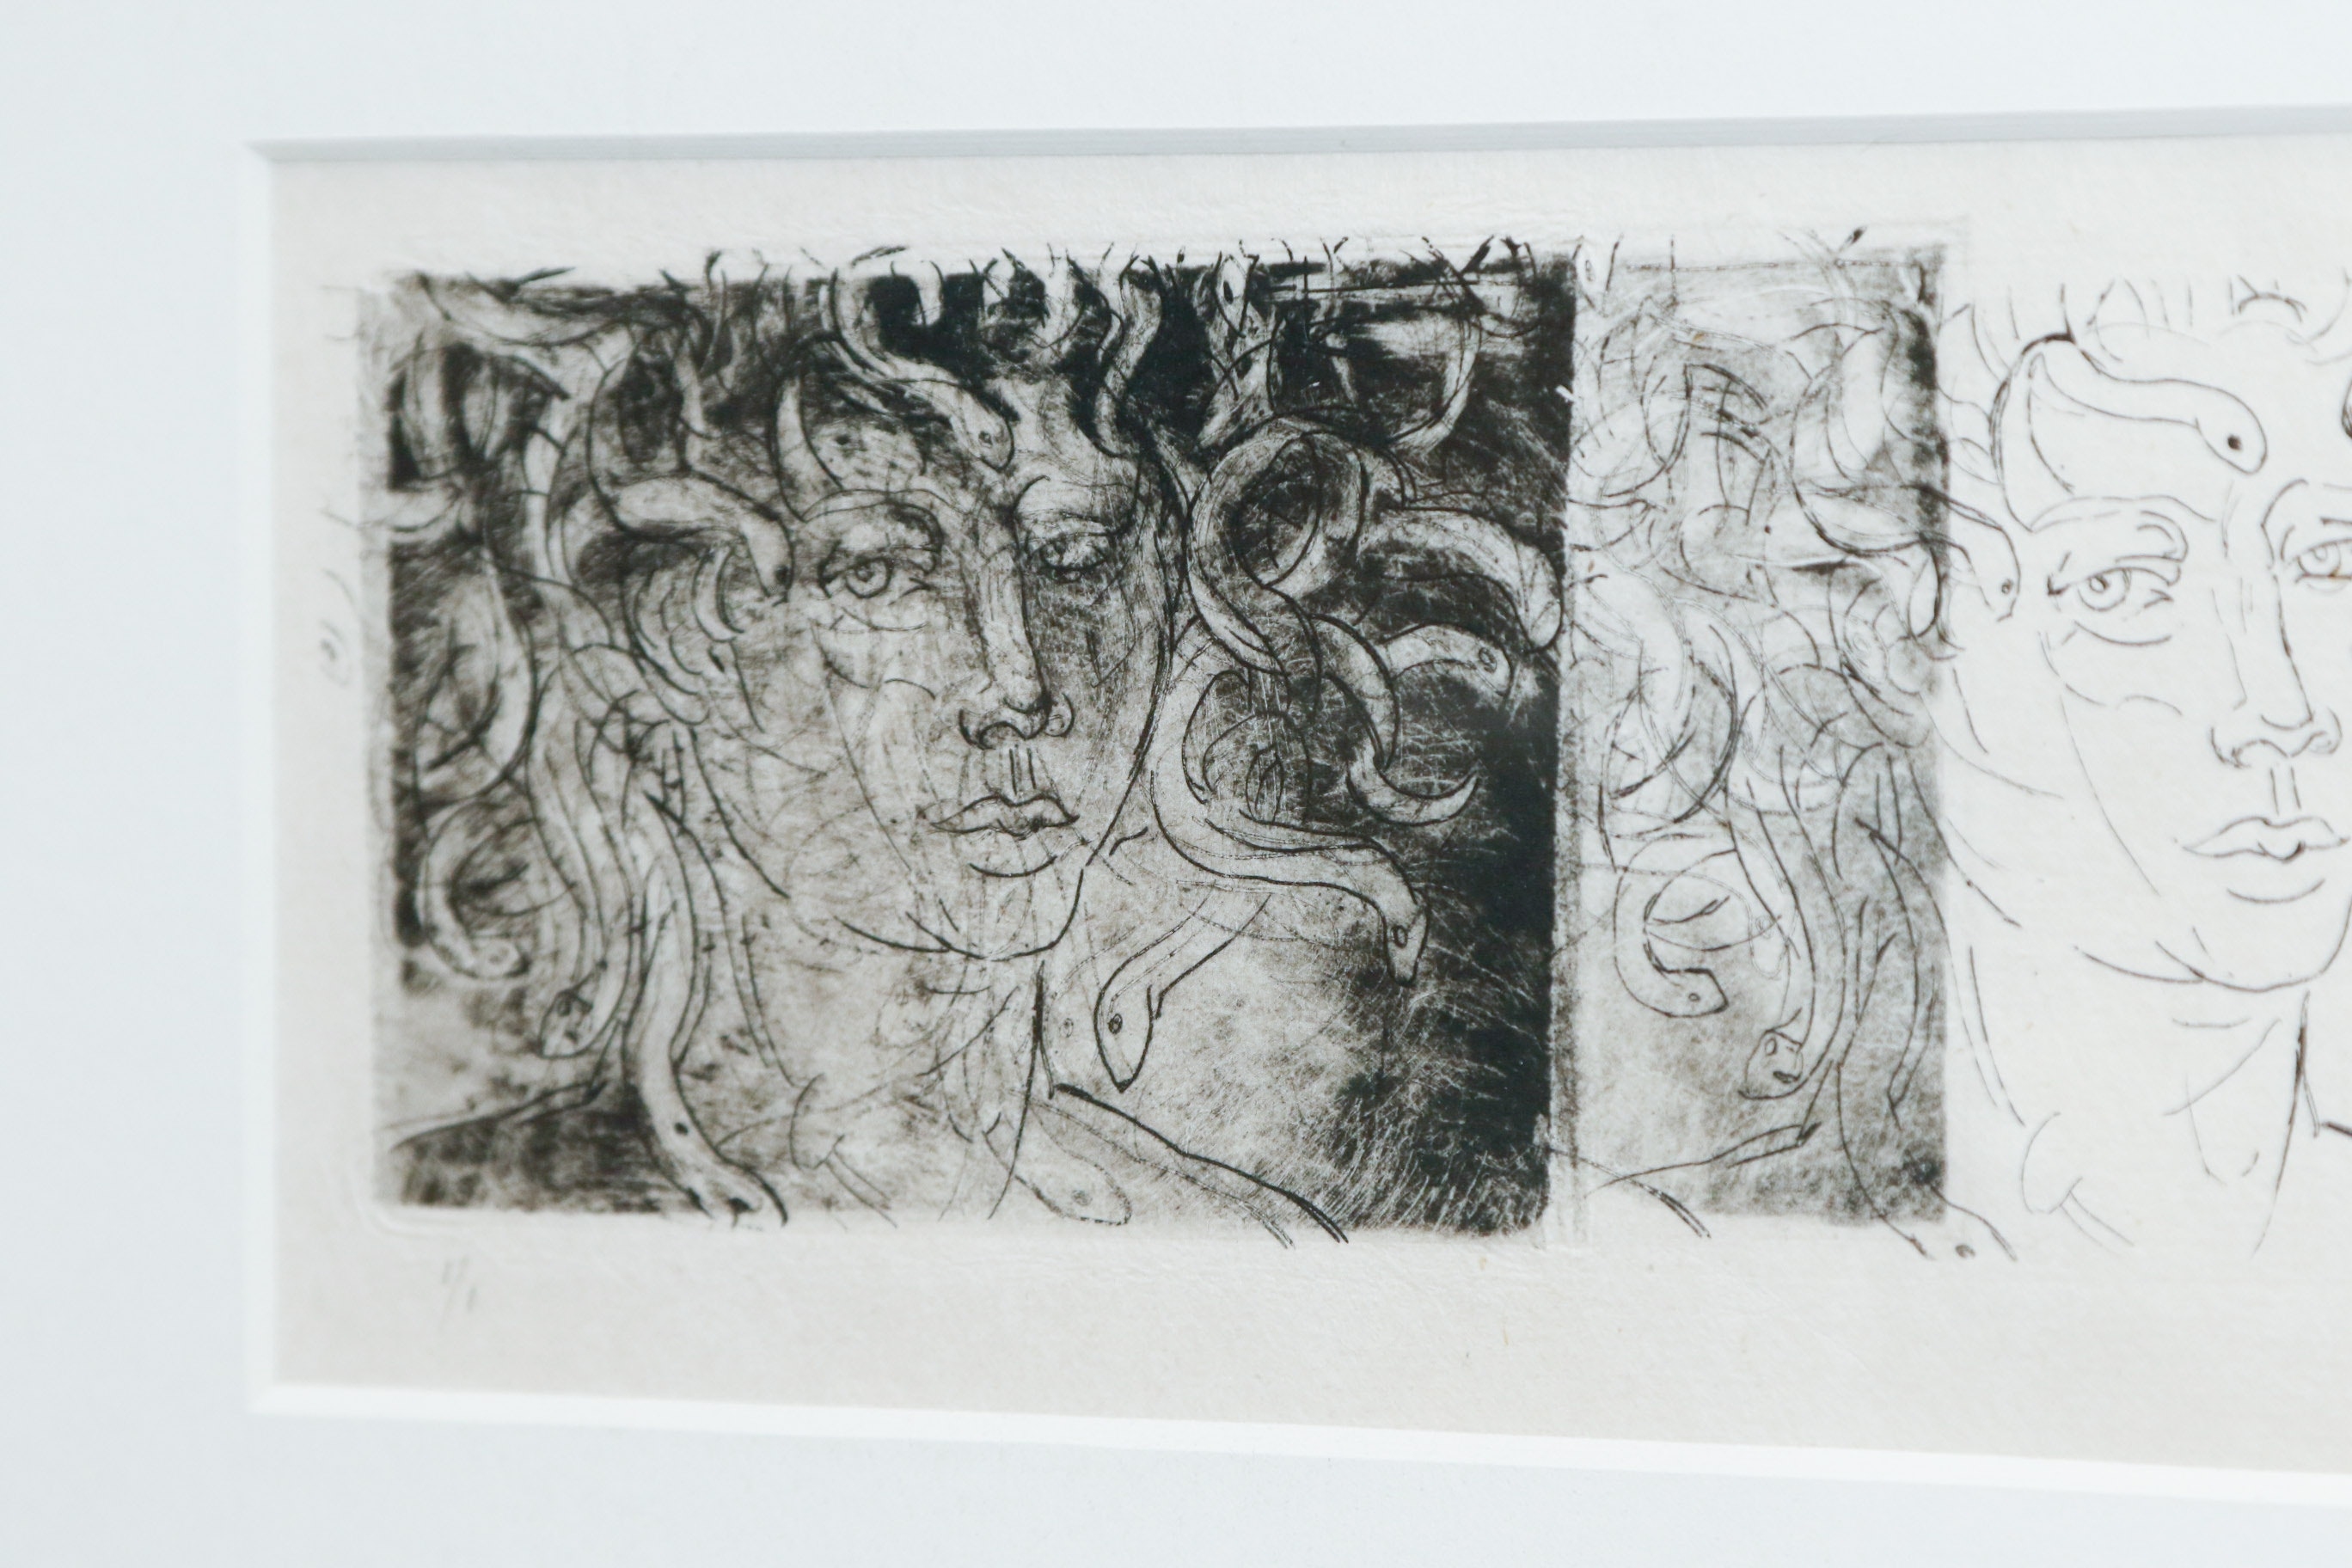 Original Monoprint Etching On Paper With Carved Bookends